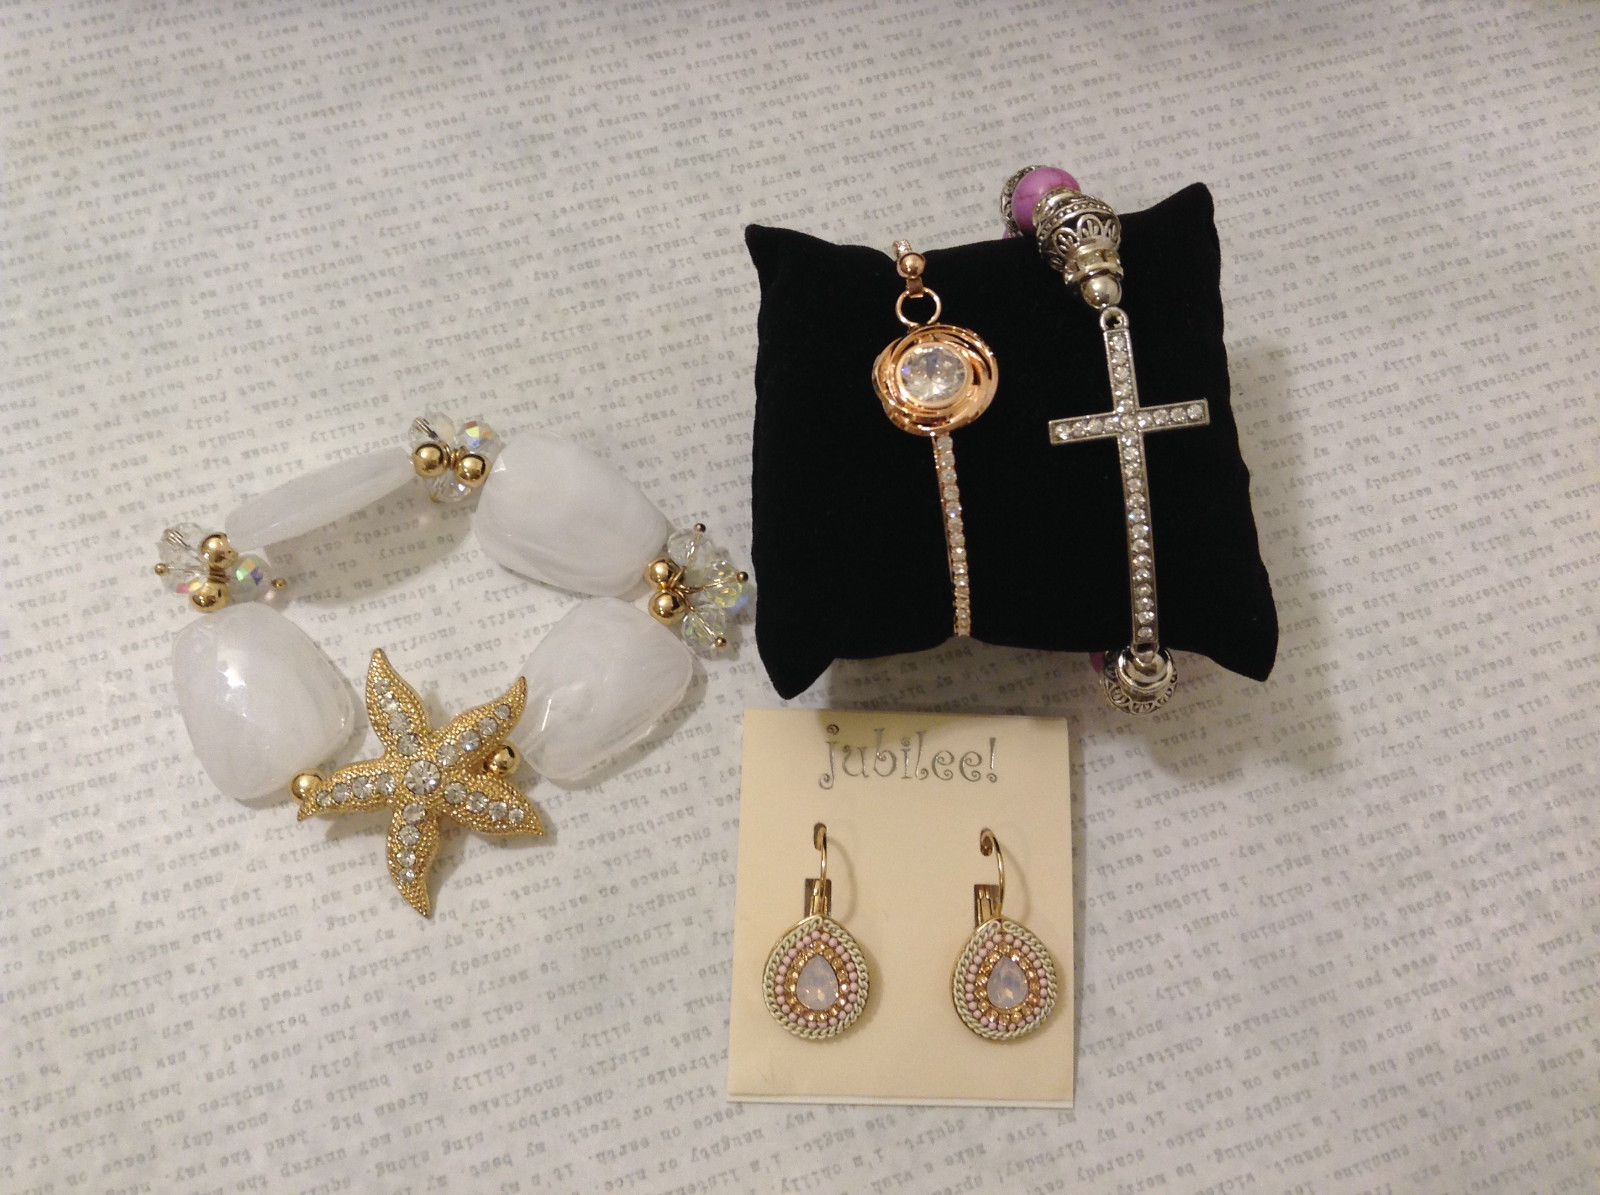 Lot of 4 pcs New Jewelry Collection Jubilee! Mix and Match Earrings Bracelets